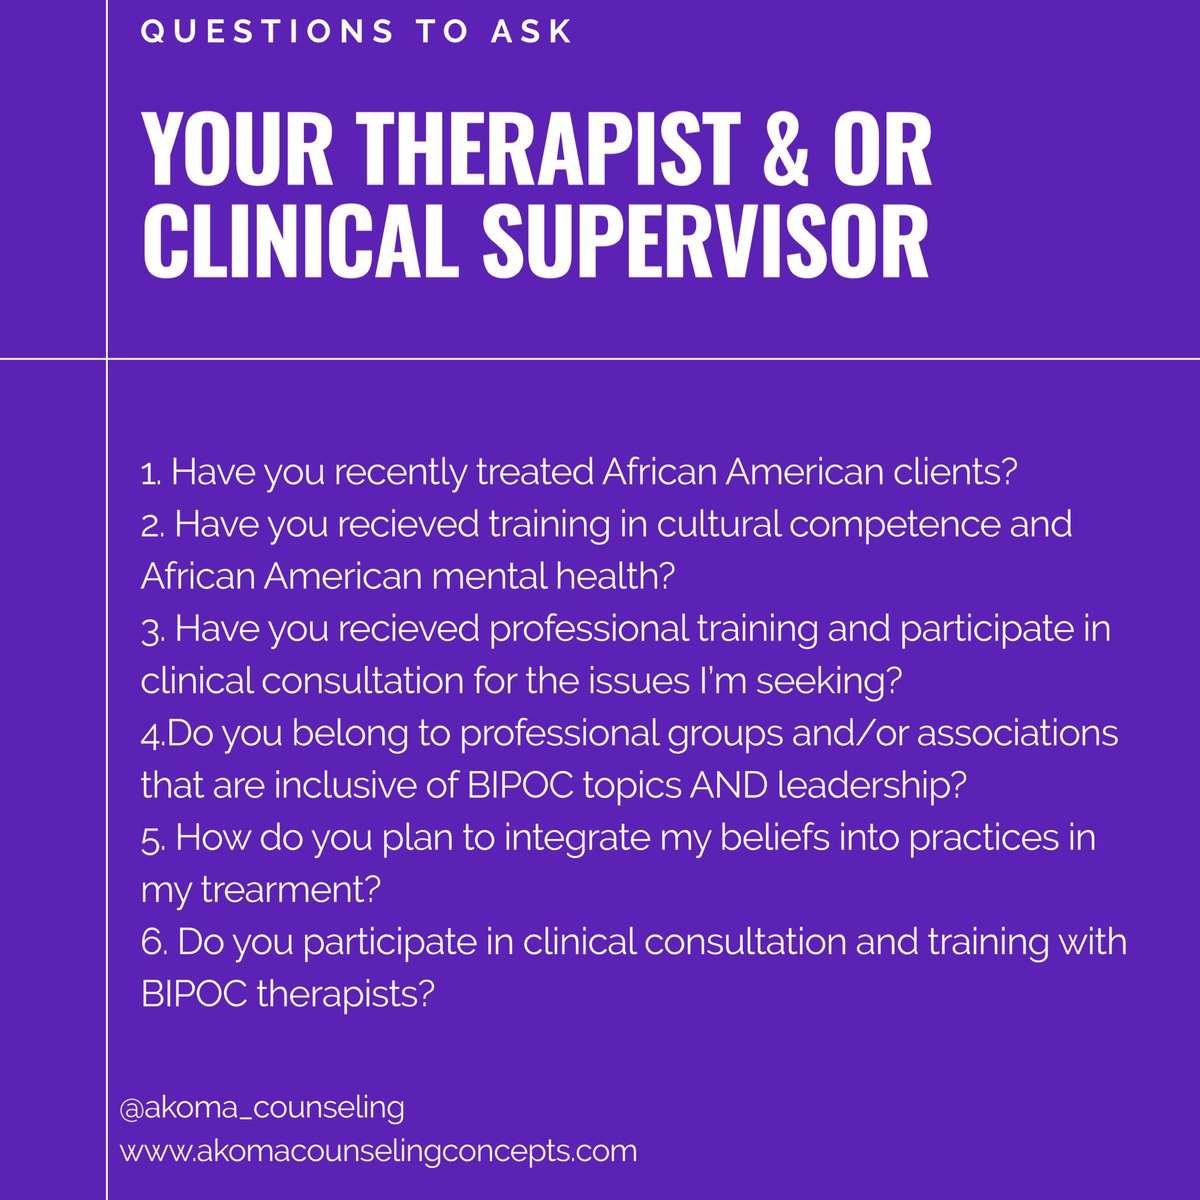 4. As a therapist and/ or clinical supervisor do you belong to professional groups and/or associations that are inclusive of BIPOC topics AND leadership? #BlackMentalHealth #BIPOC #thread https://t.co/DoNWCRBaNX